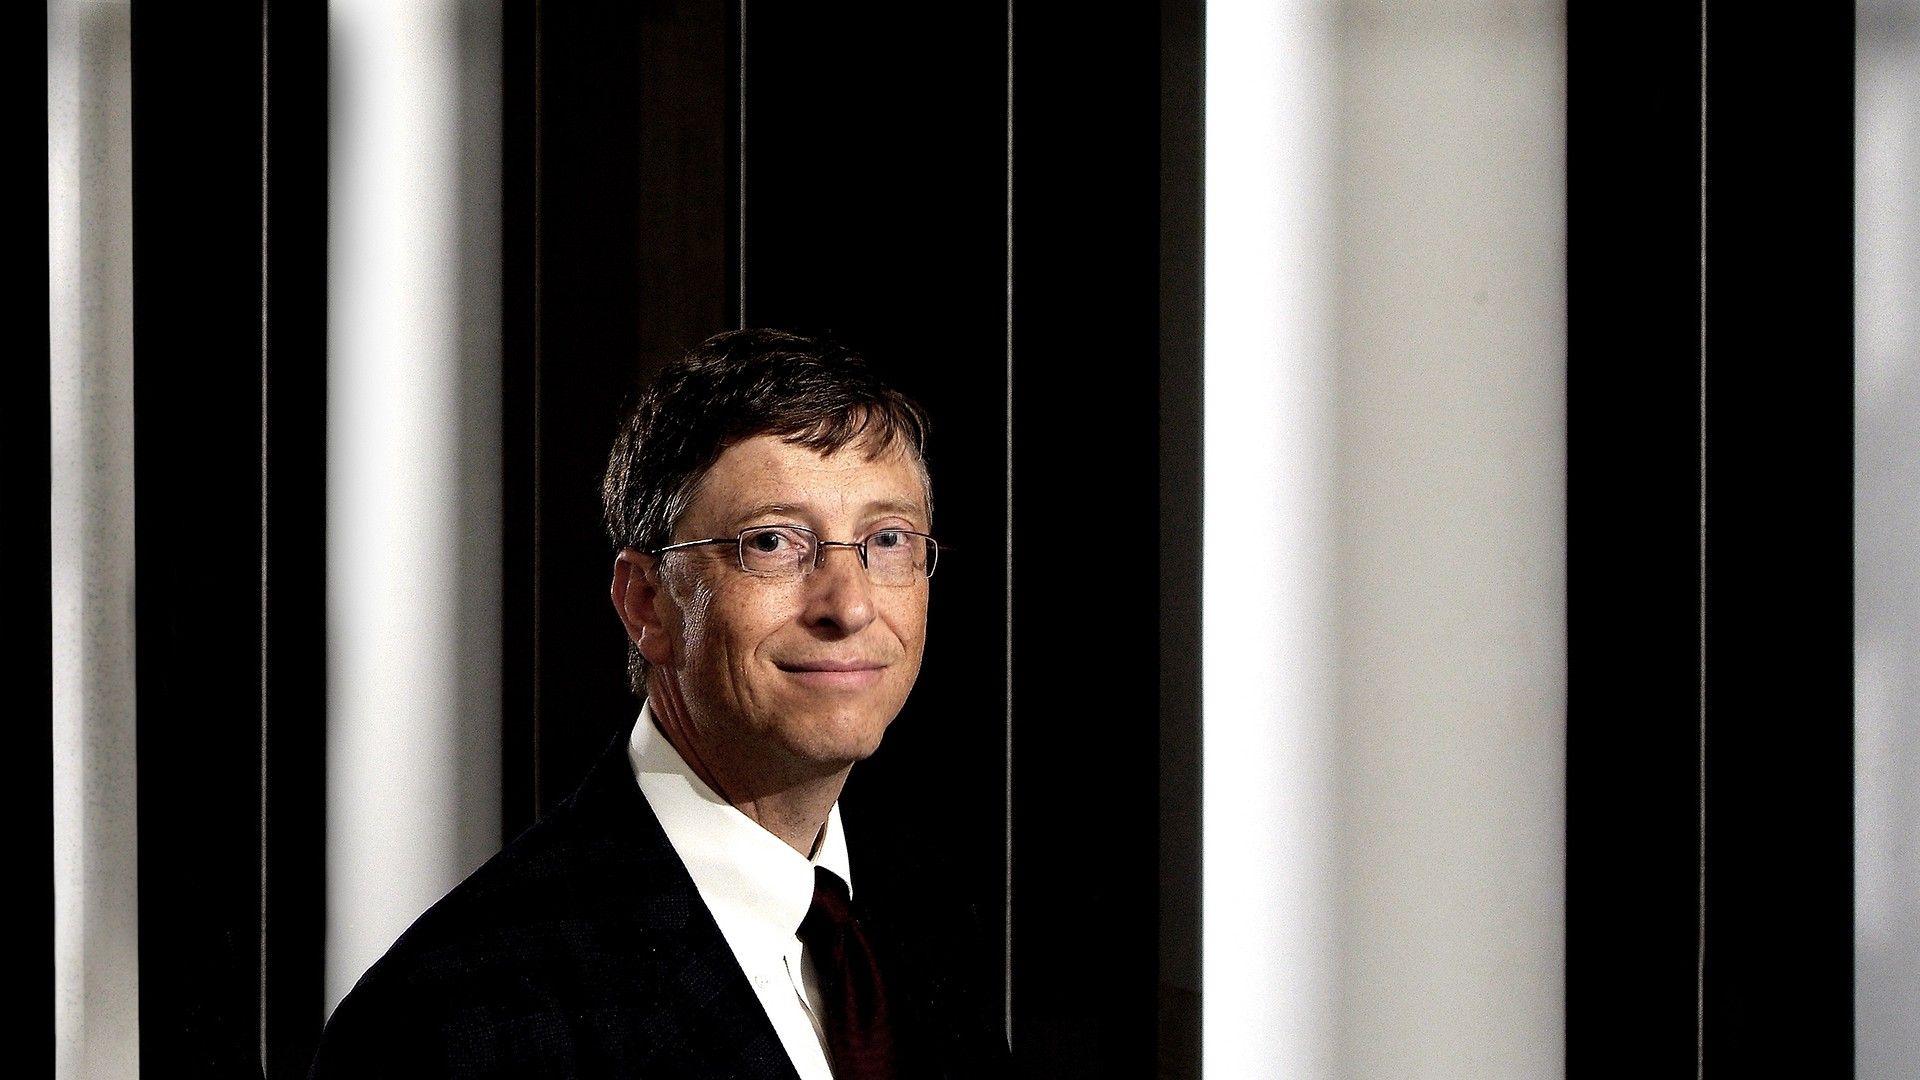 JohnnyMillar_Photography_Commercial_Portrait_Bill Gates at the British Library Autumn 2006